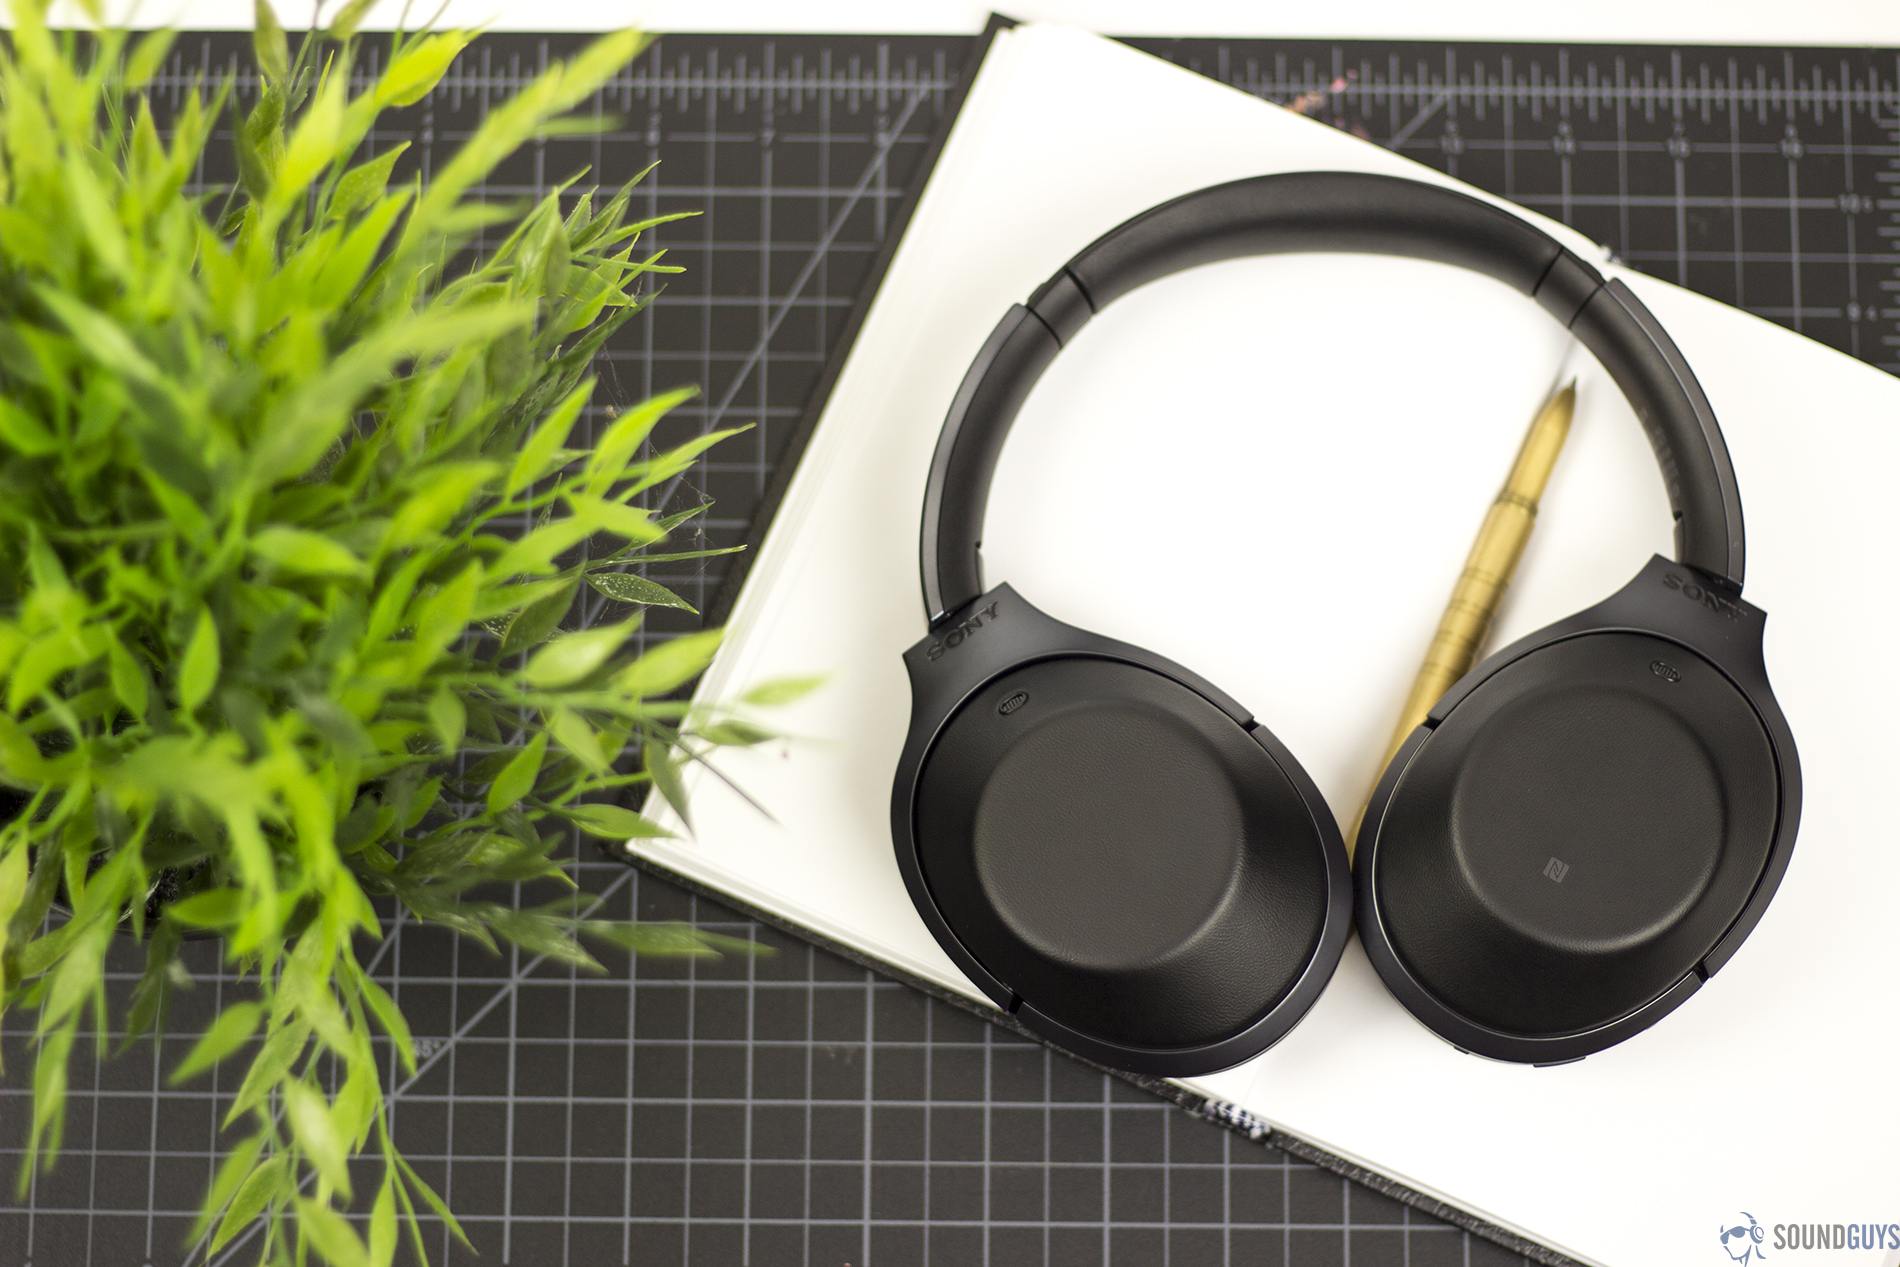 Sony Mdr 1000x Review Soundguys Noice Cancelling Bluetooth Headphone A Photo Of The Best Active Noise Canceling Headphones Candidate And